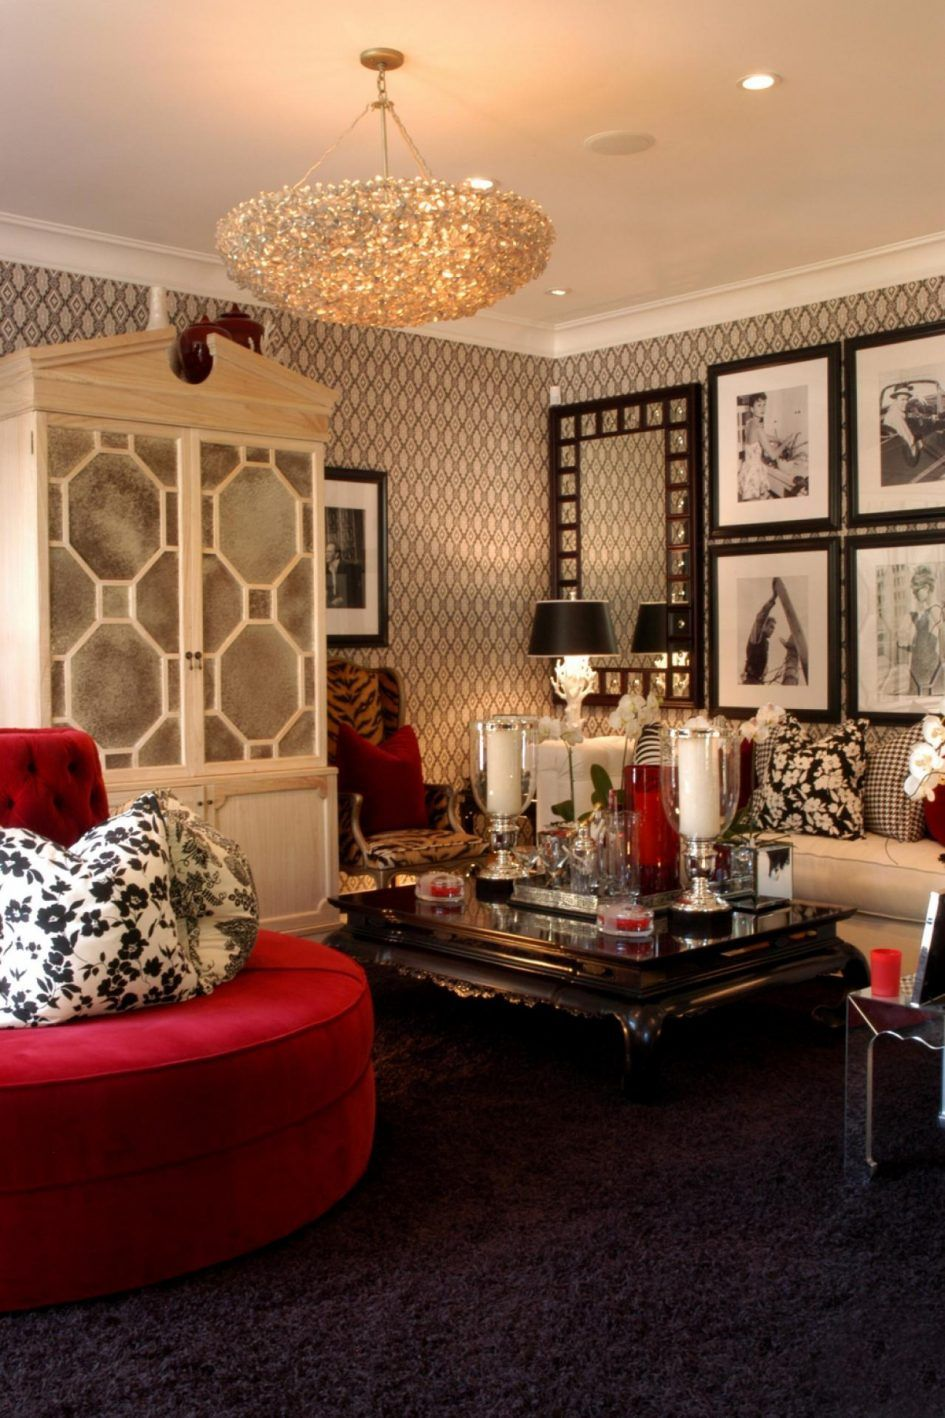 Furniture Hollywood Regency Decor With Red Sofa And Chandelier